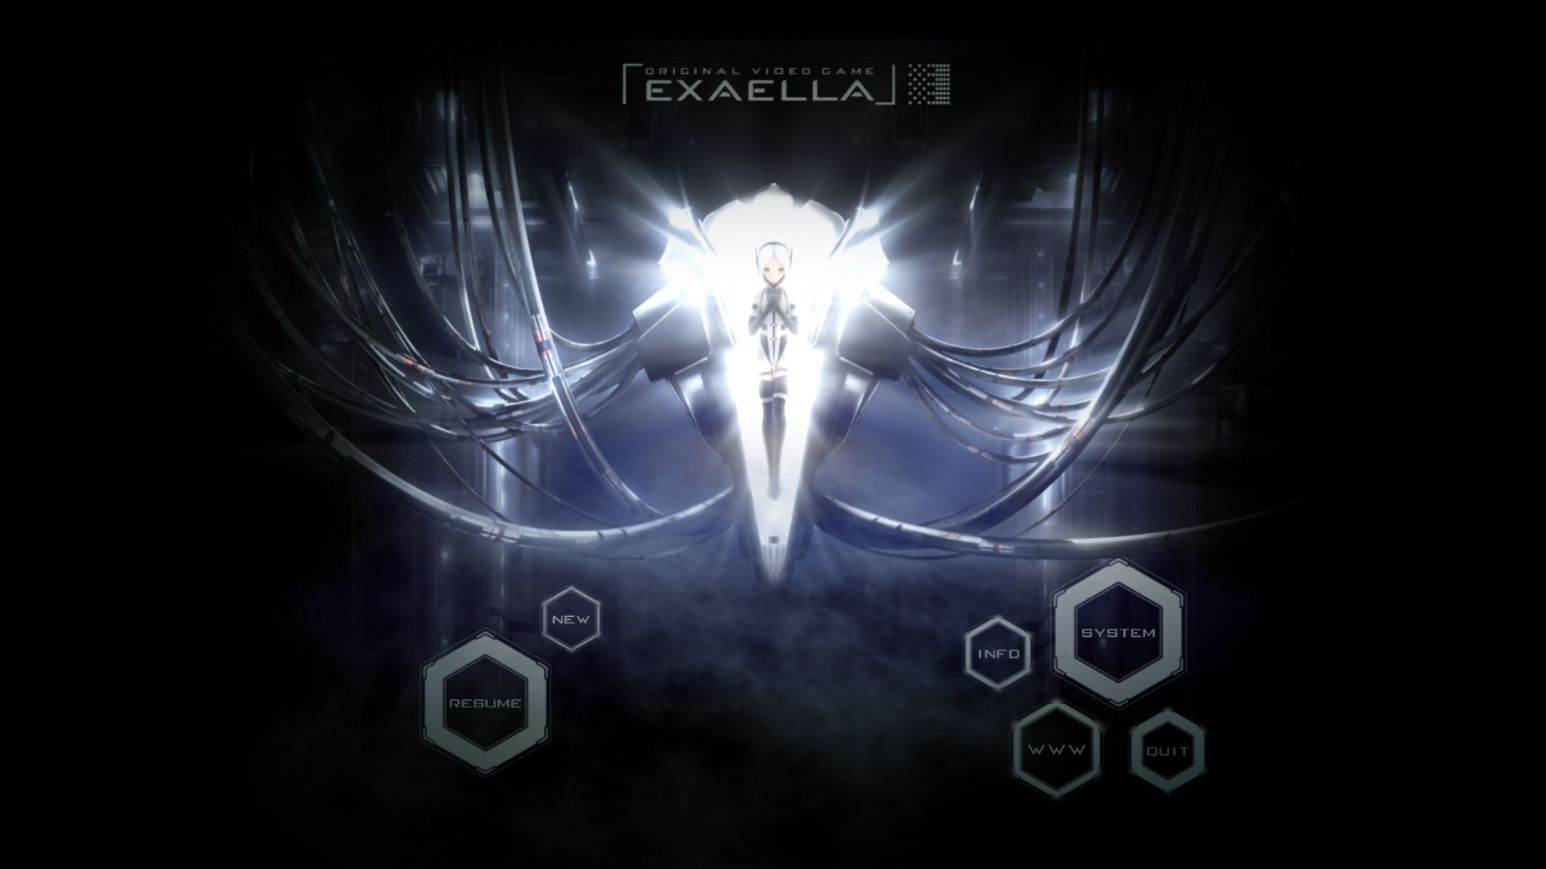 EXAELLA (copie d'écran 1 sur iPhone / iPad)